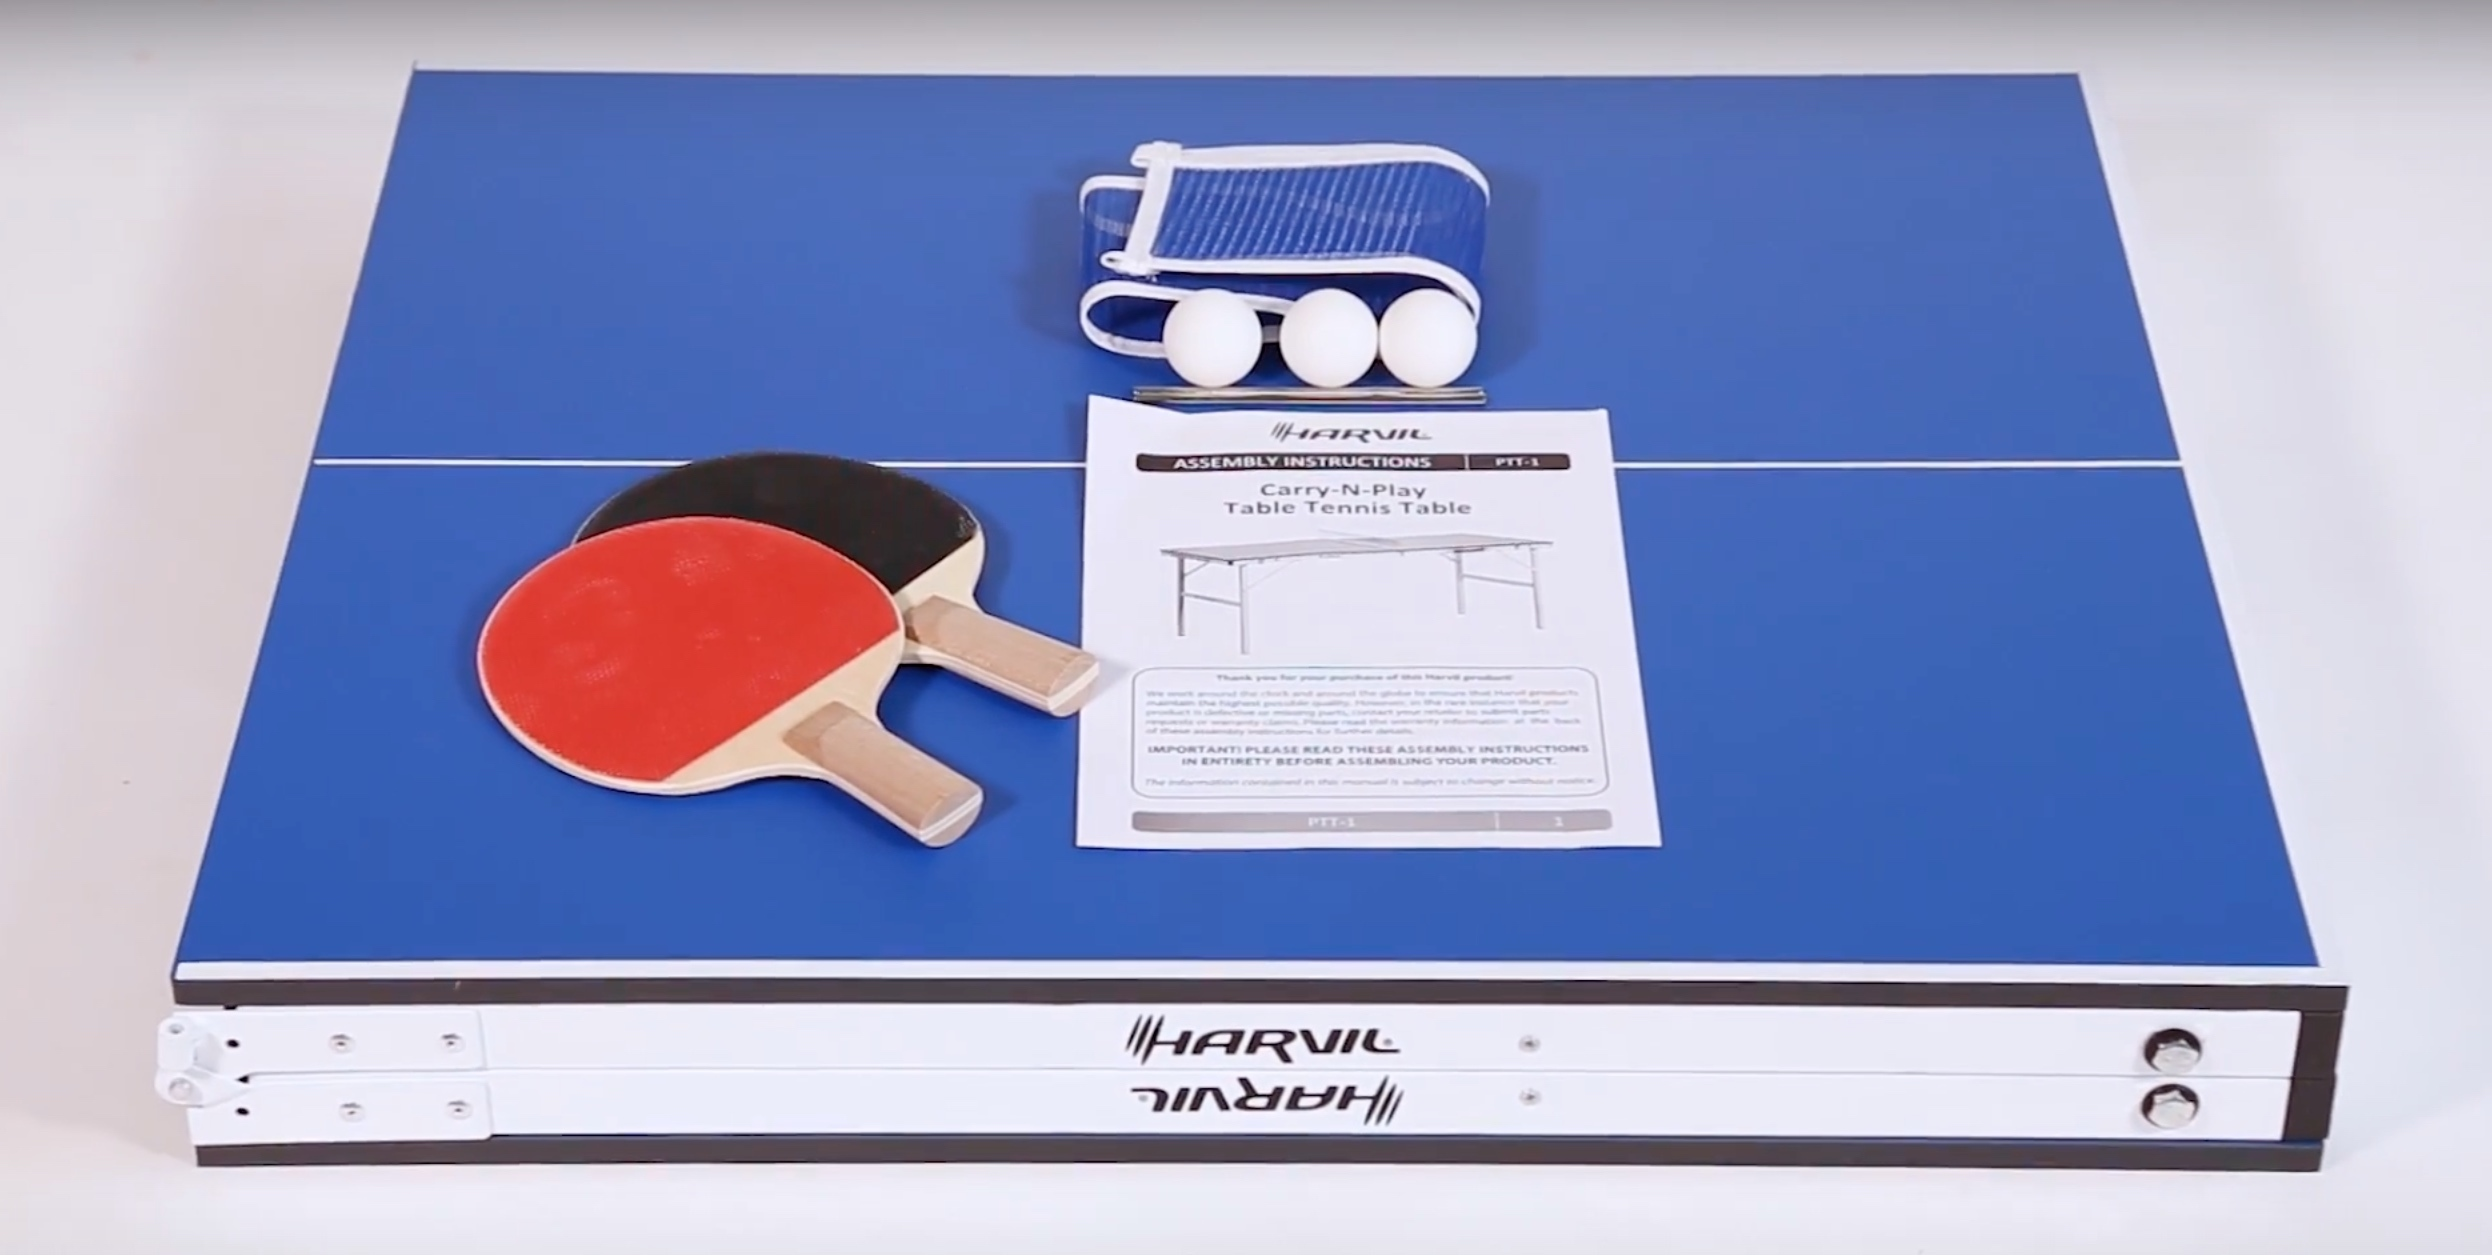 e42bea989 Best Portable Ping Pong Table Options (Mini Table Tennis Tables)